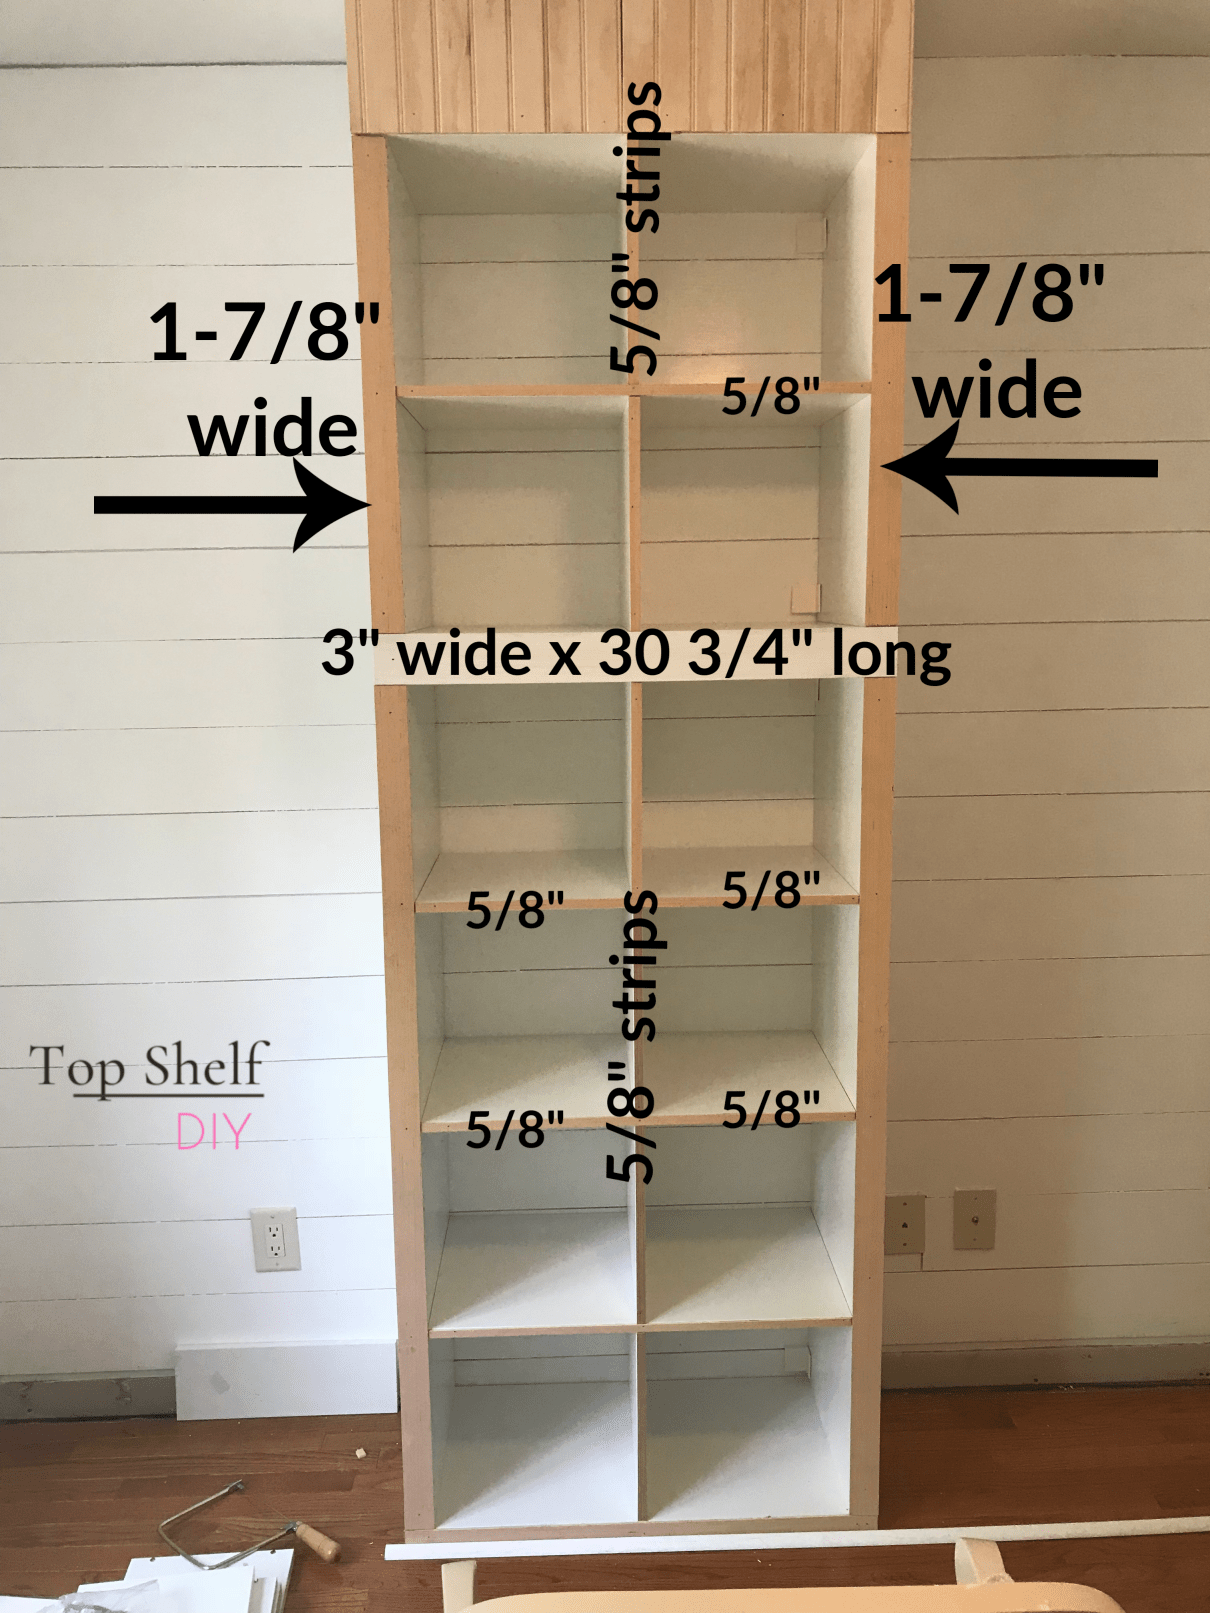 Kallax The Great 8 Feet Of Floor To Ceiling Storage For Less Than